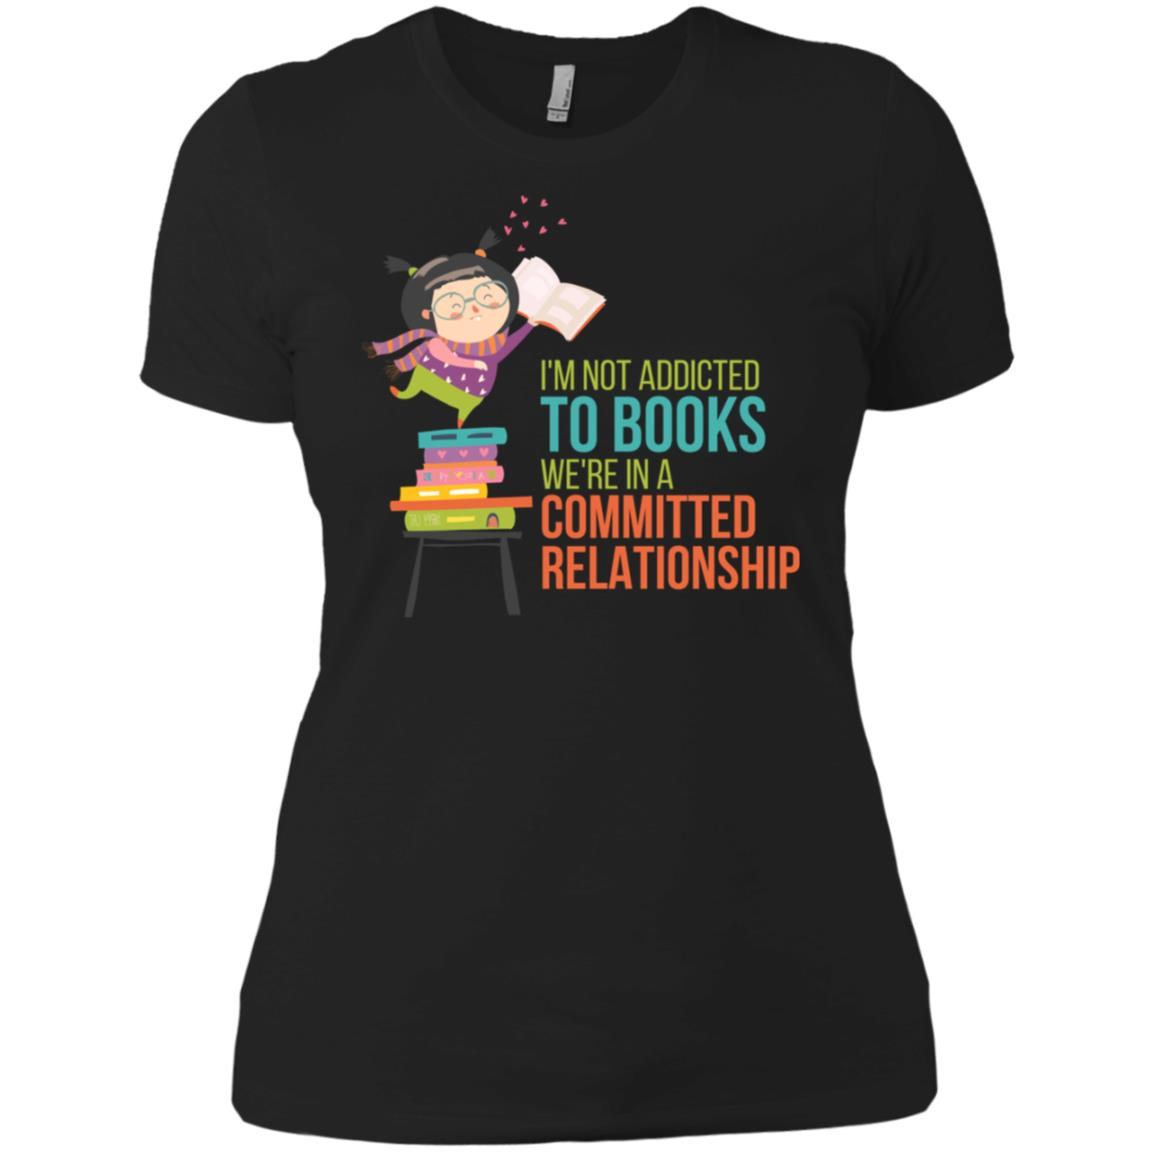 I'm Not Addicted To Books We're In A Committed Relationship Women Short Sleeve